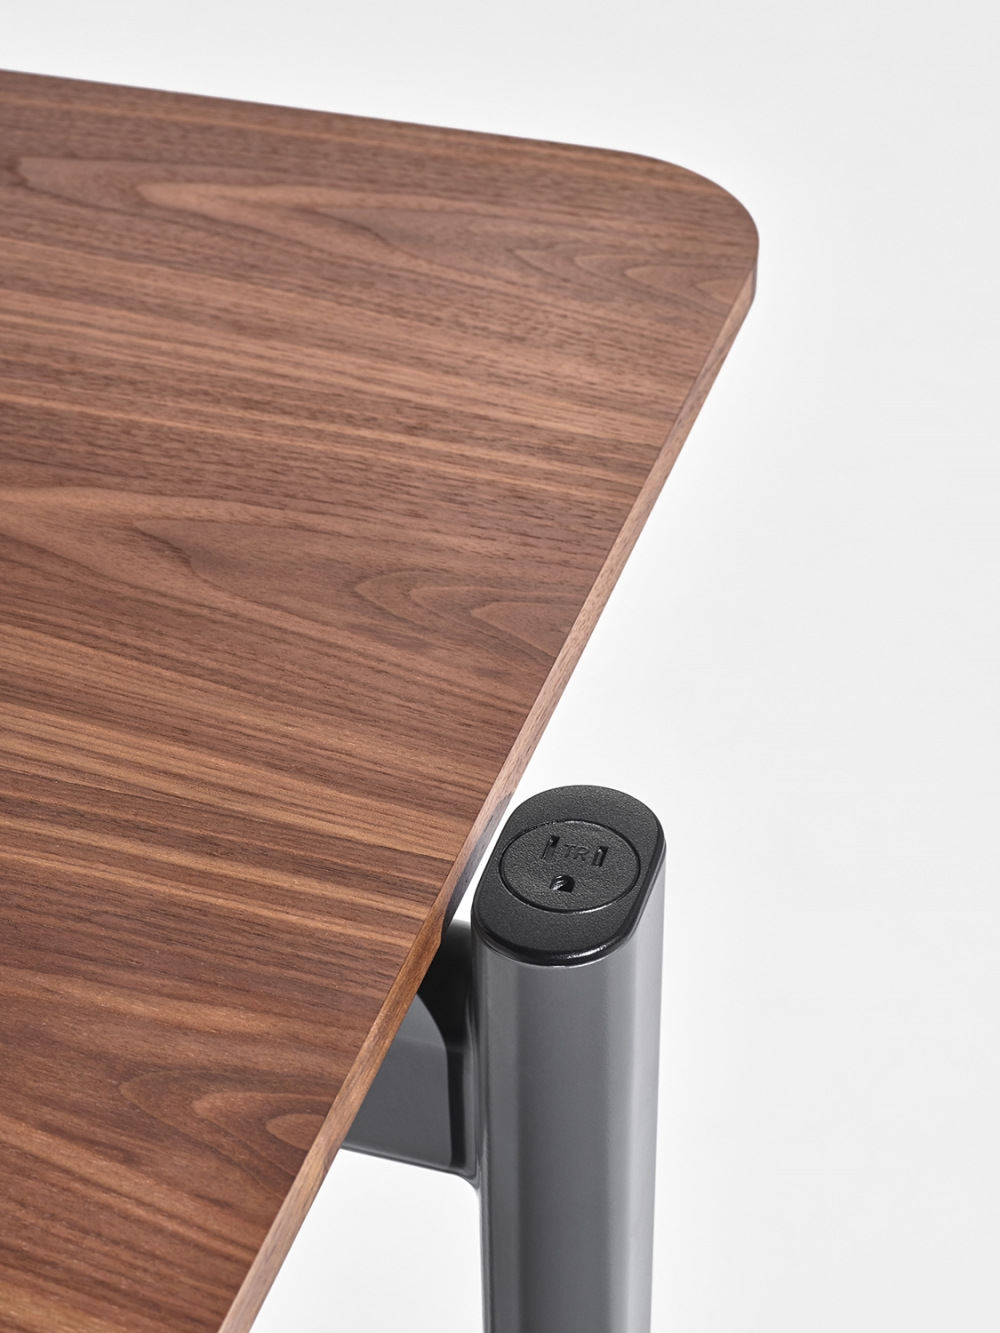 Preview of MYNE Out | Training Table | Walnut Veneer | Power Cap Simplex Receptacle